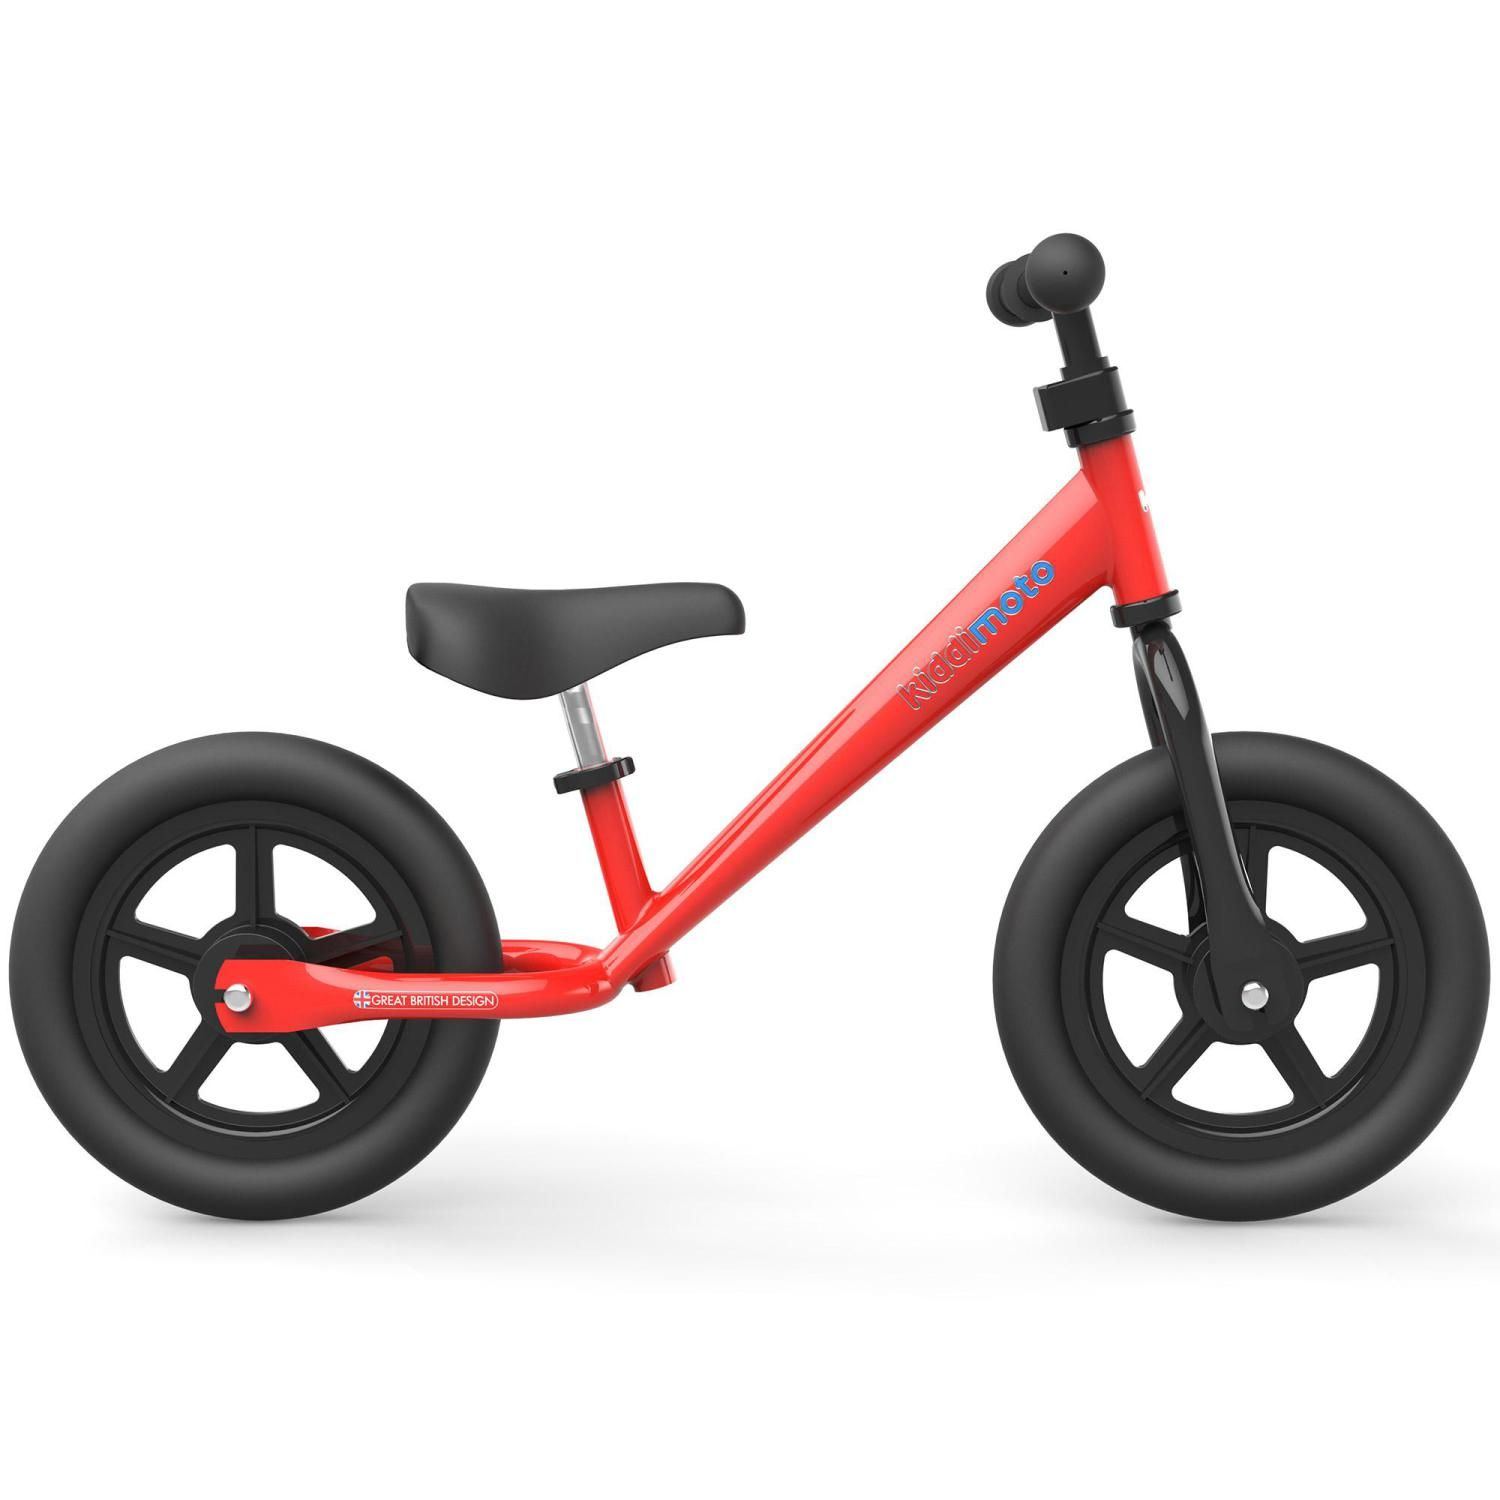 Top 10 Balance Bikes For Toddlers 2016 With Images